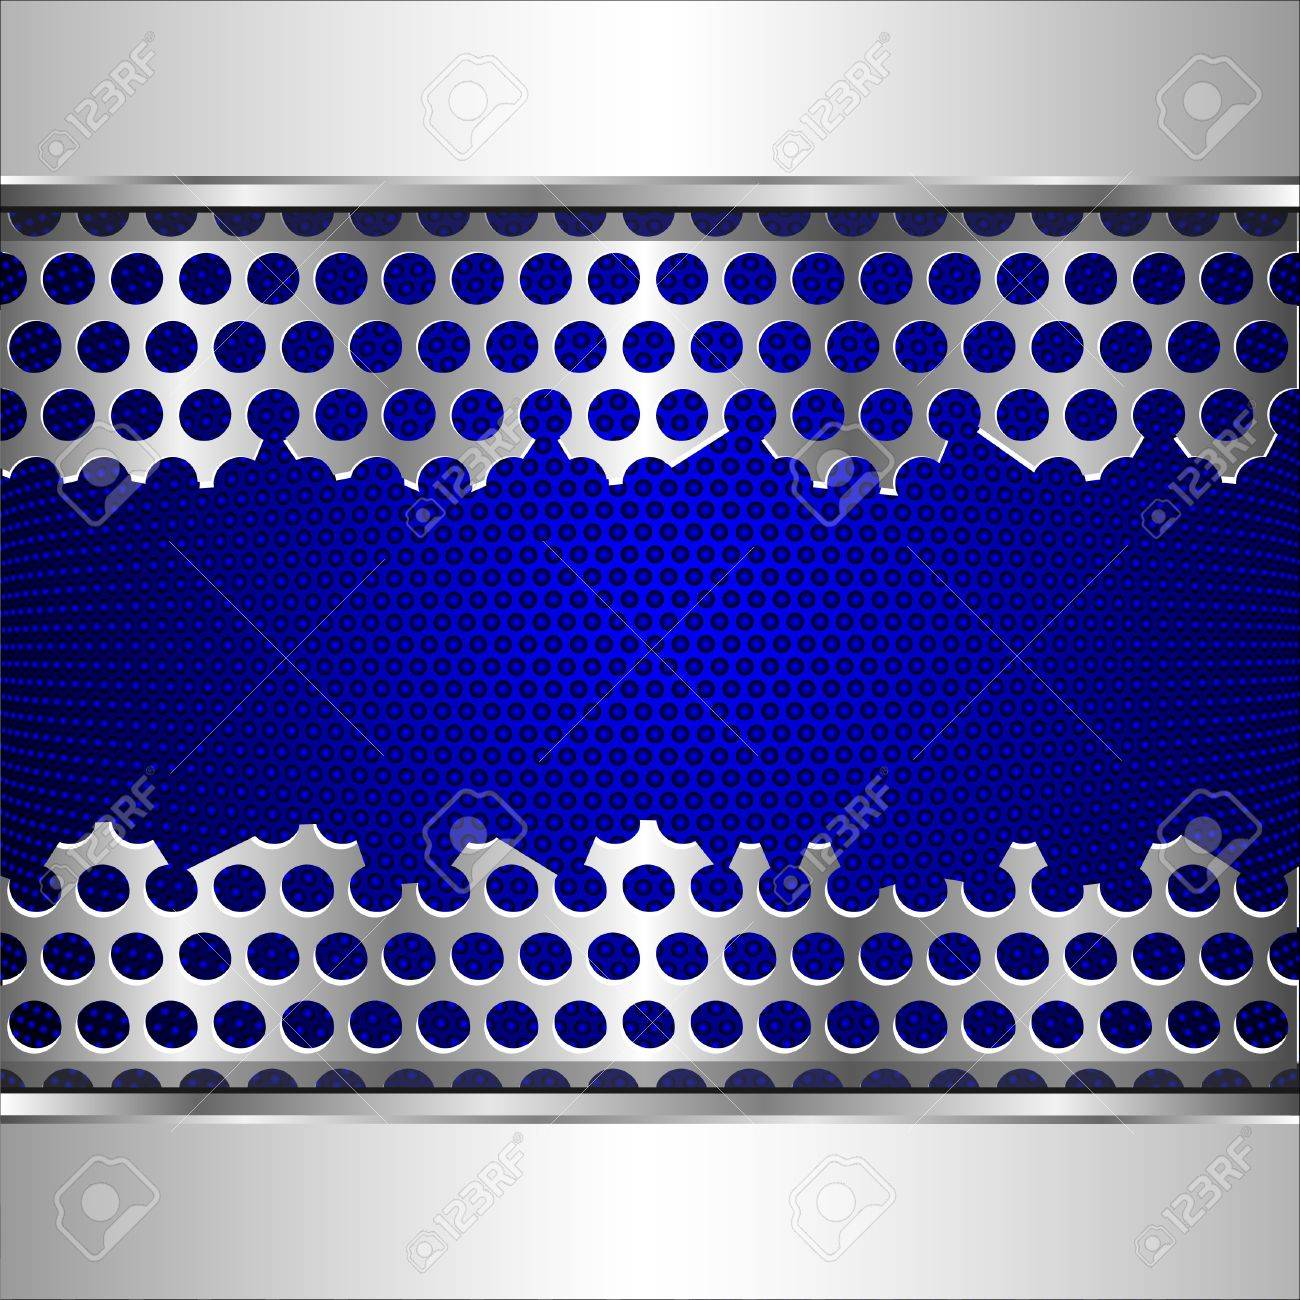 Vector background with damaged perforated metal plate Stock Vector - 11552225